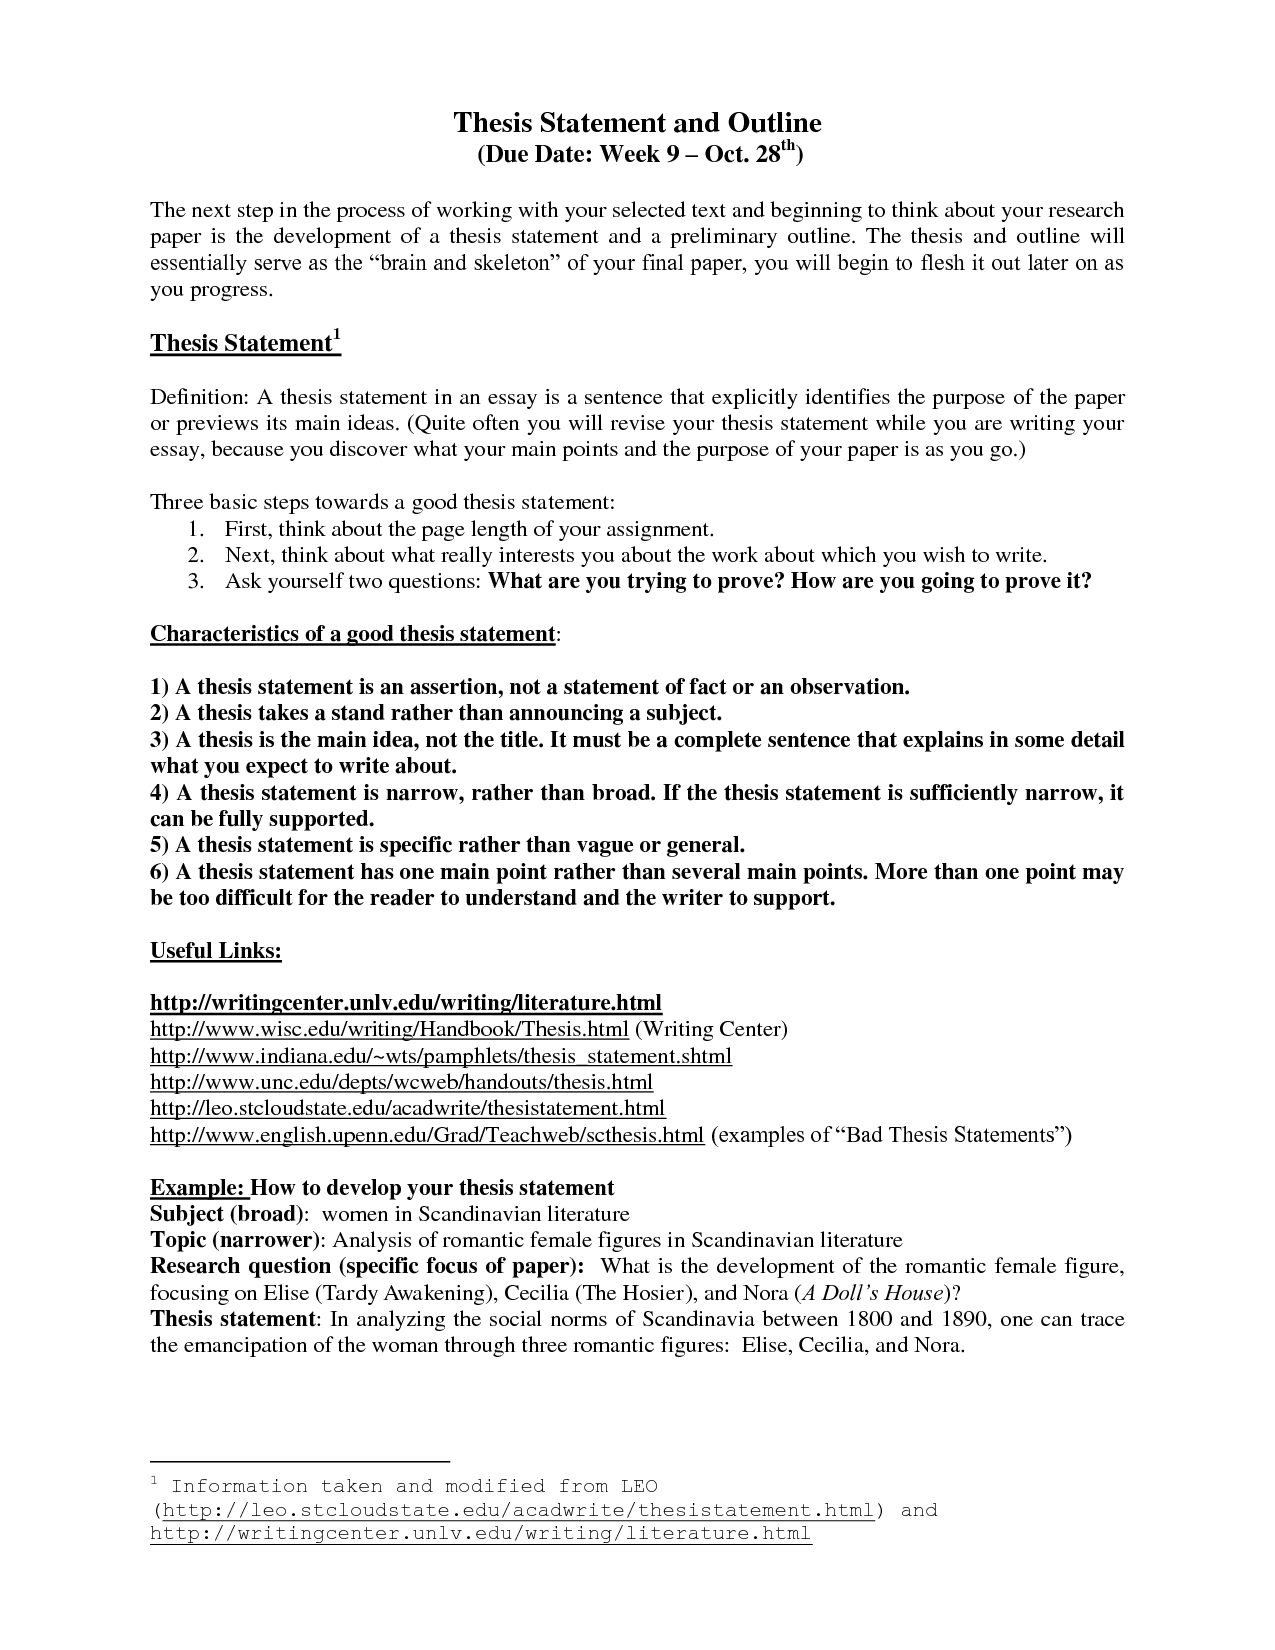 001 Thesis Statement And Outline Template Wx8nmdez Research Paper How To Write For Staggering A Examples Full